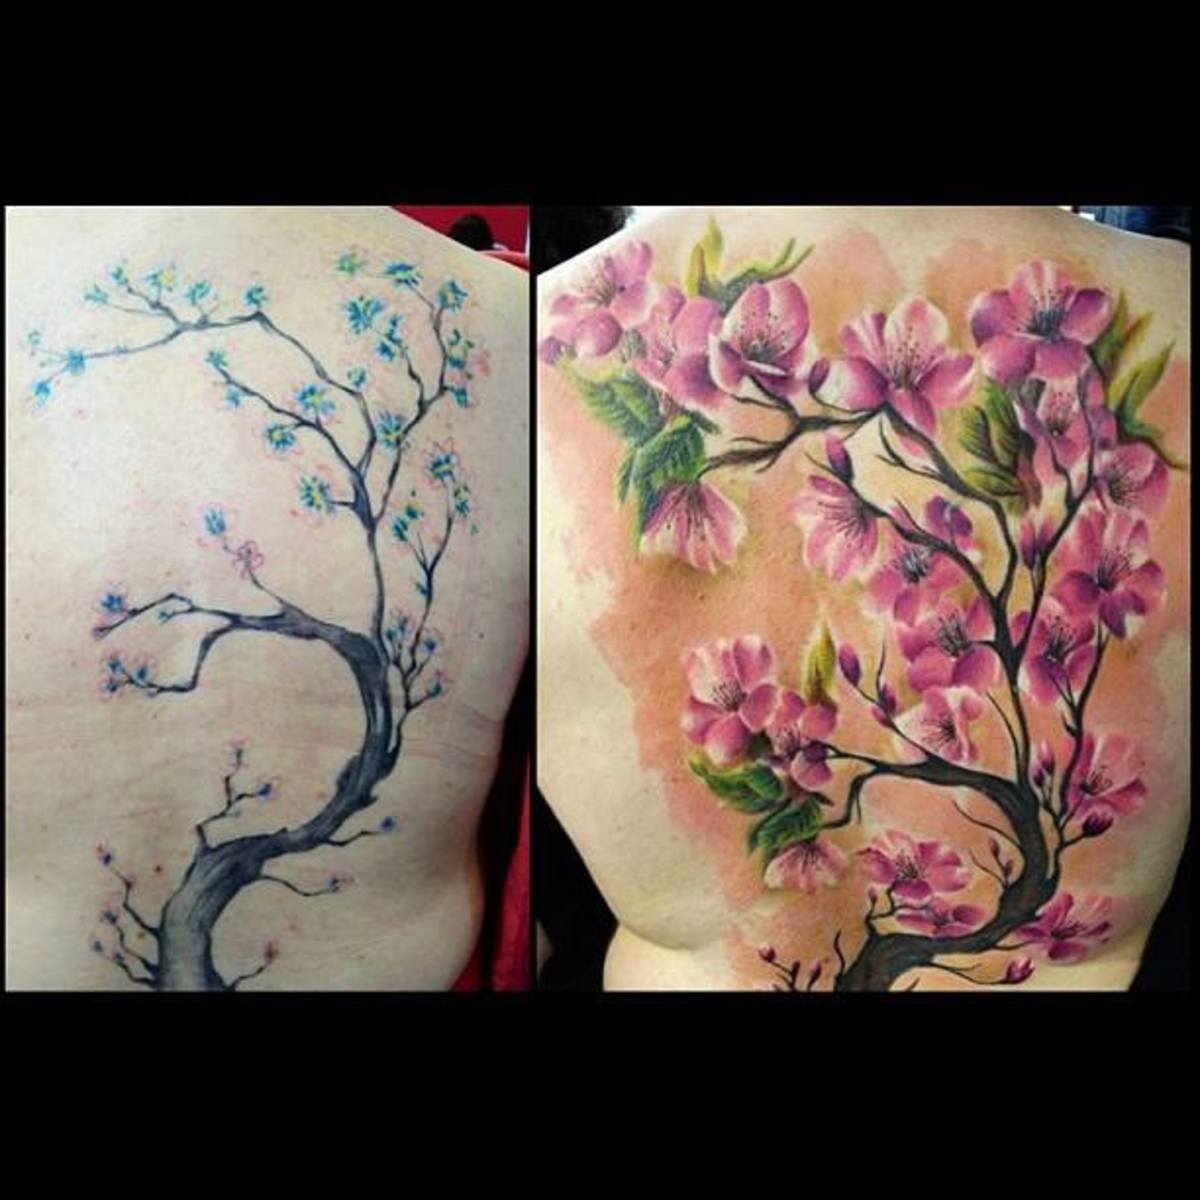 Tree tattoo reworked